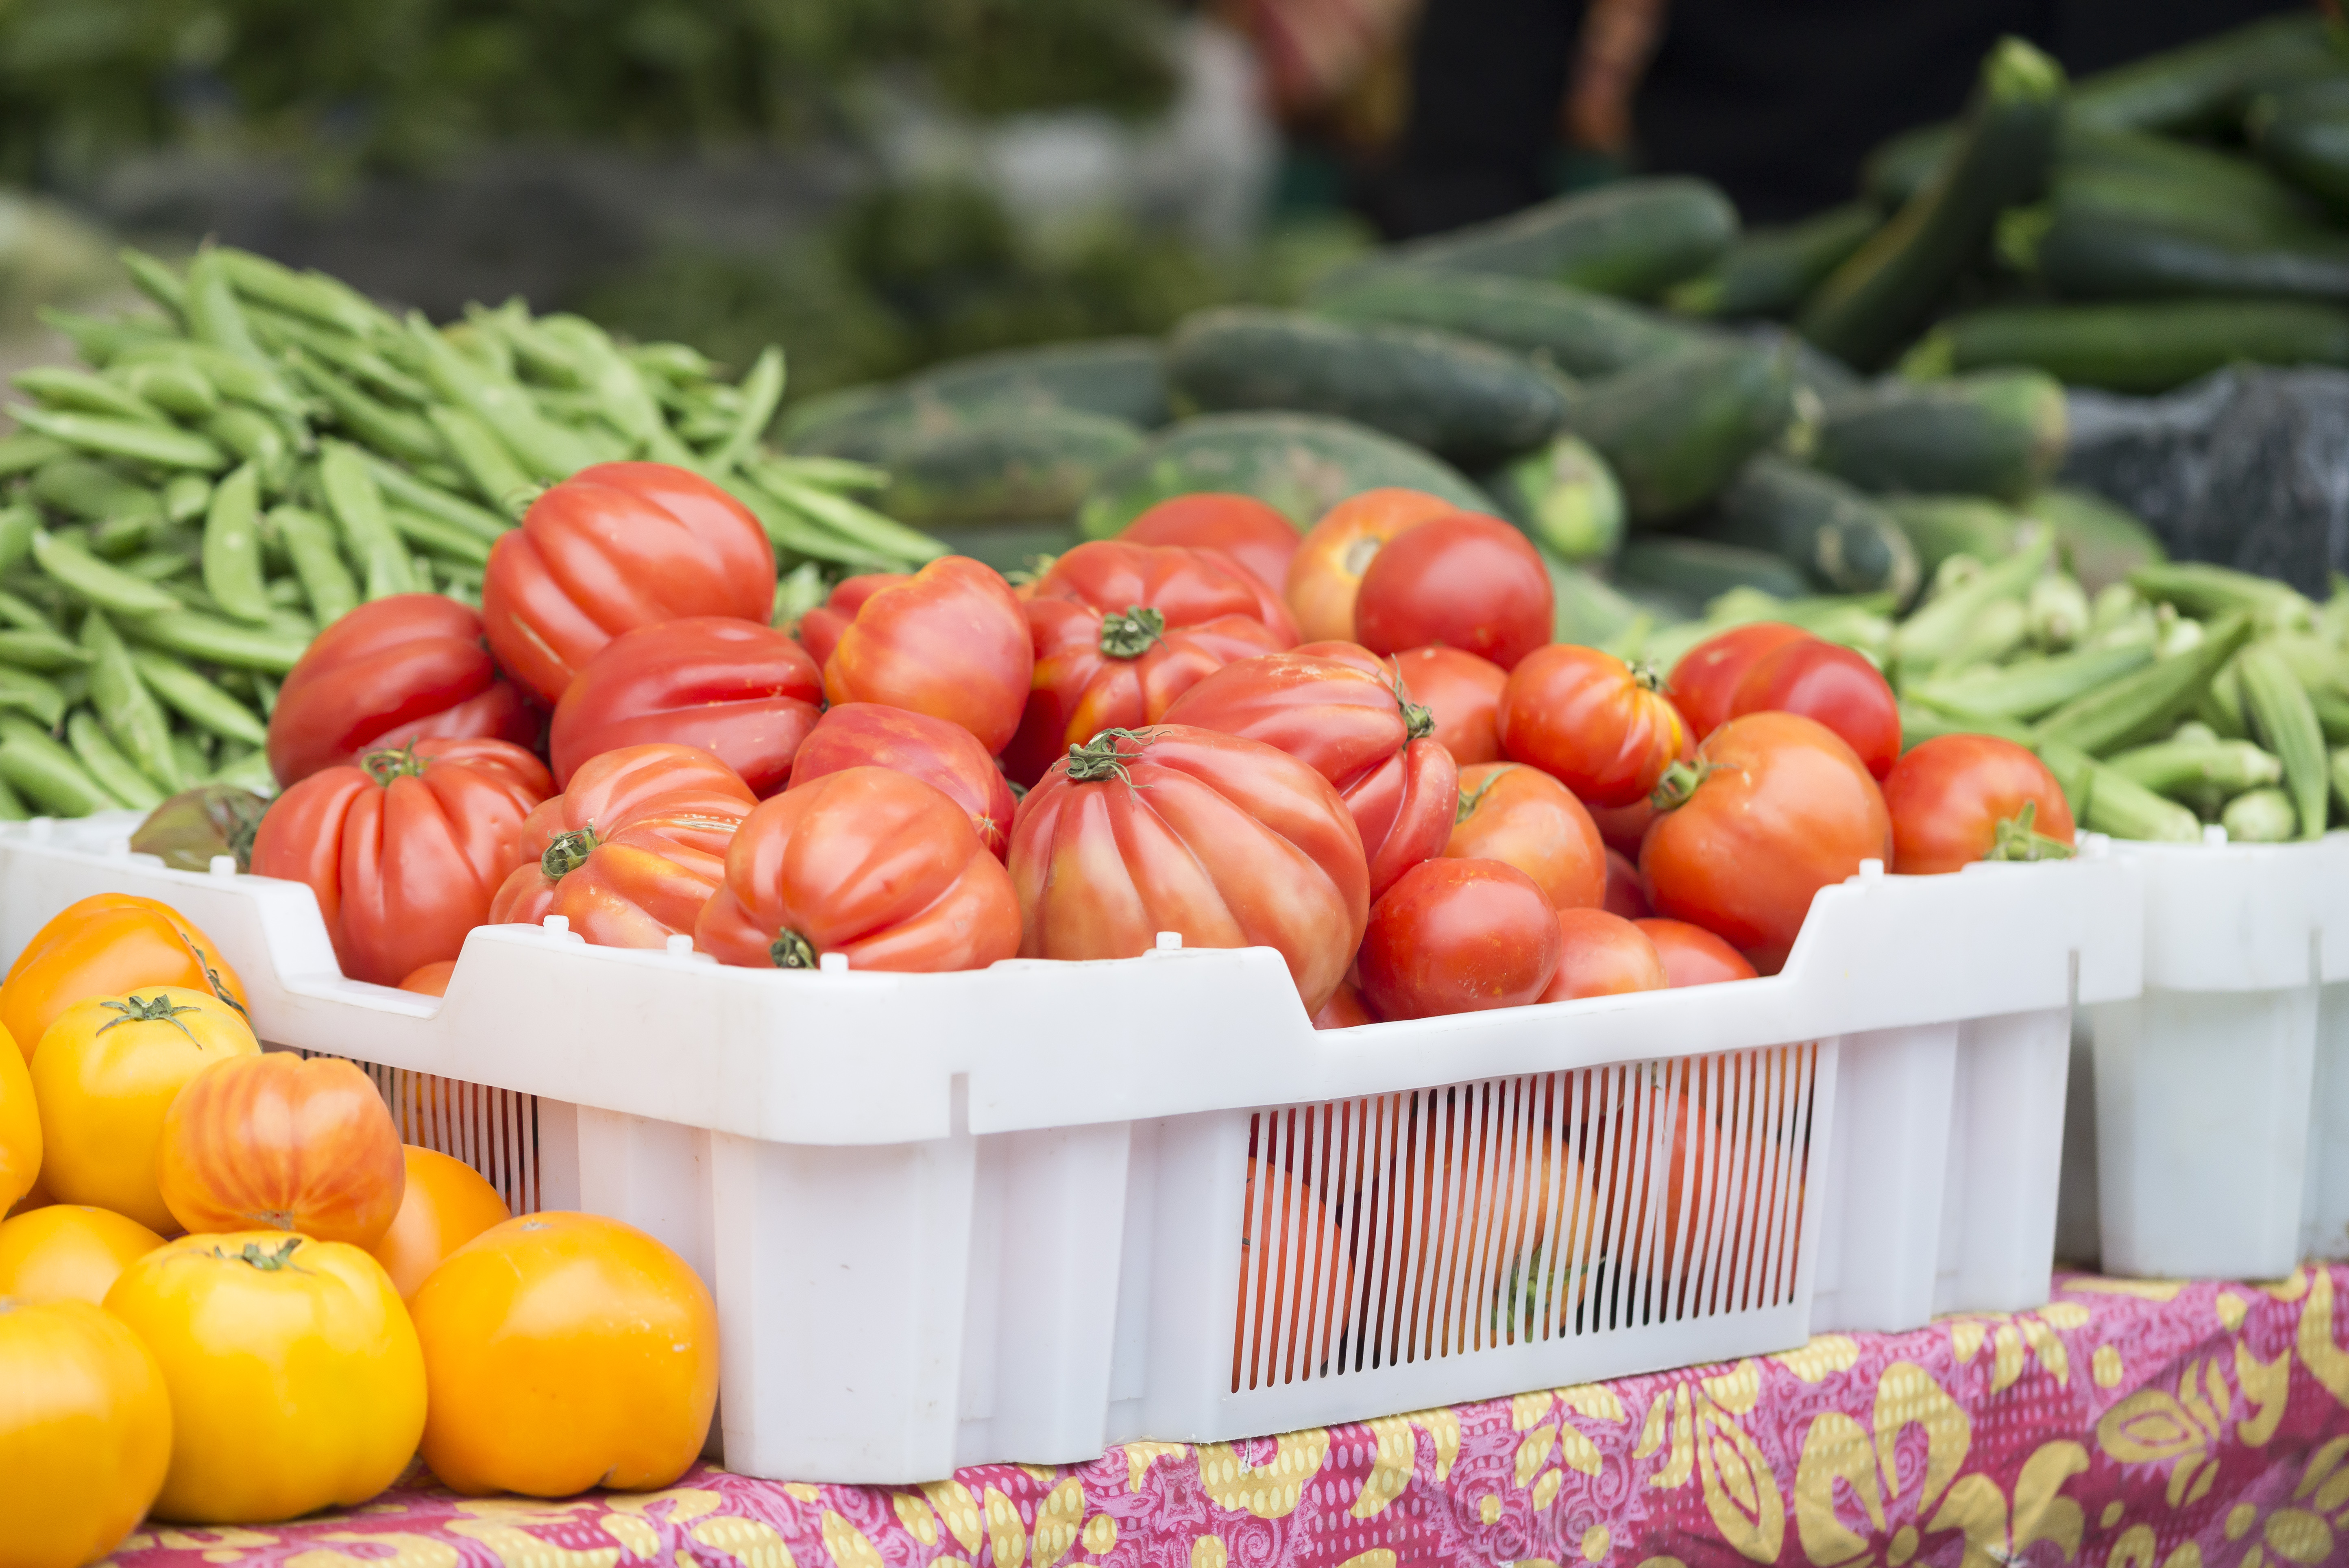 Chicago farmers markets 2019 schedule and locations - Curbed